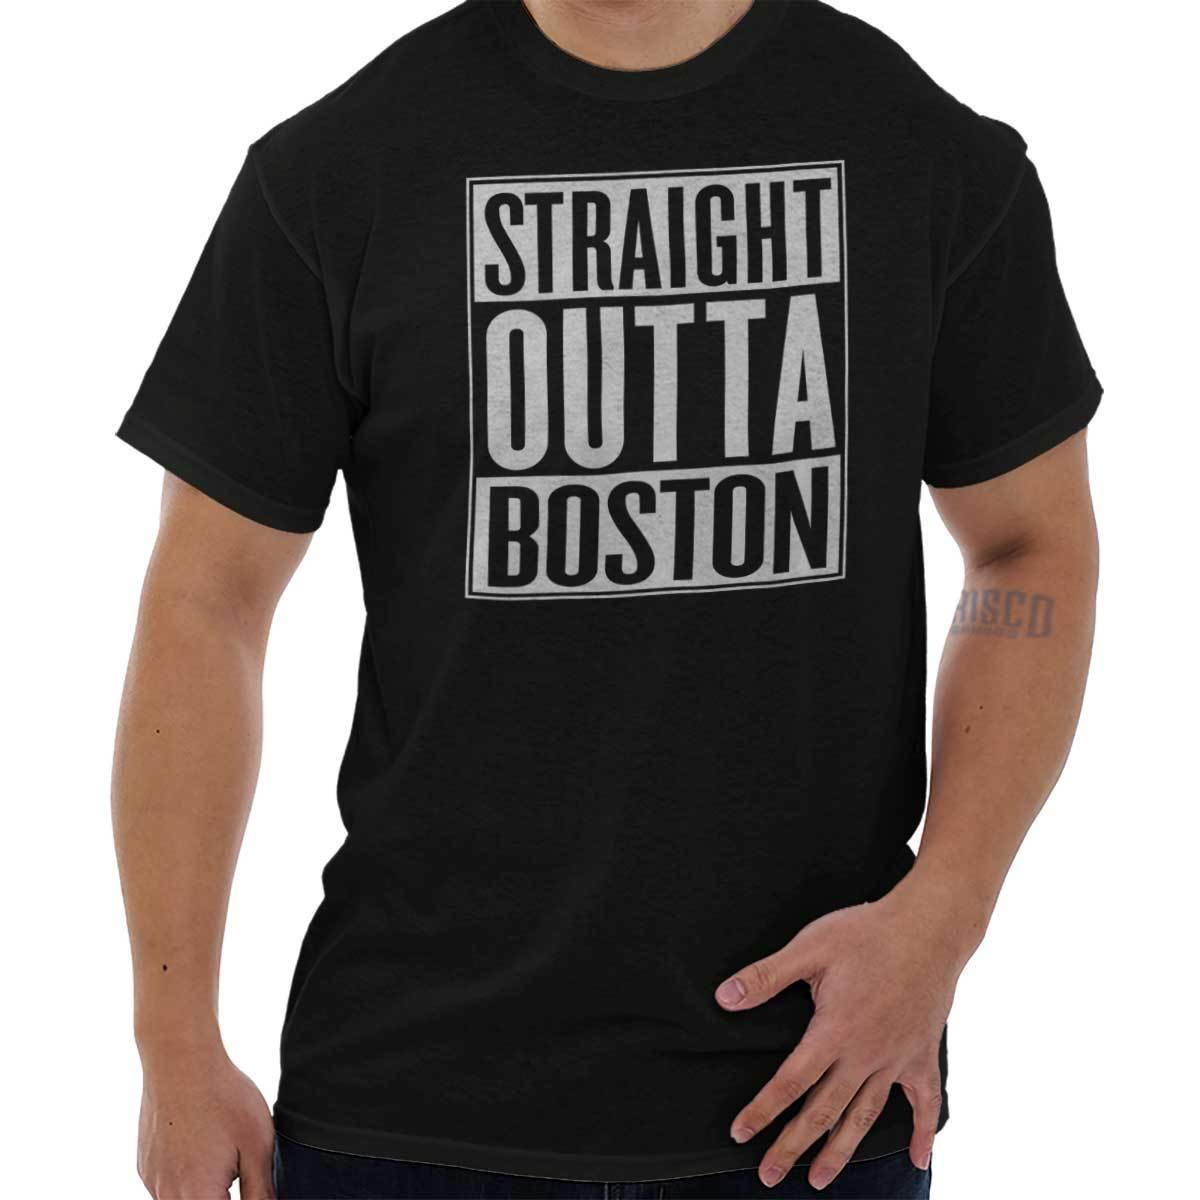 Straight Outta Boston, MA City Funny Movie Magliette Idee regalo T-Shirt Tee Casual manica corta TEE Fashion Style Uomo Tee 2019 hot tee